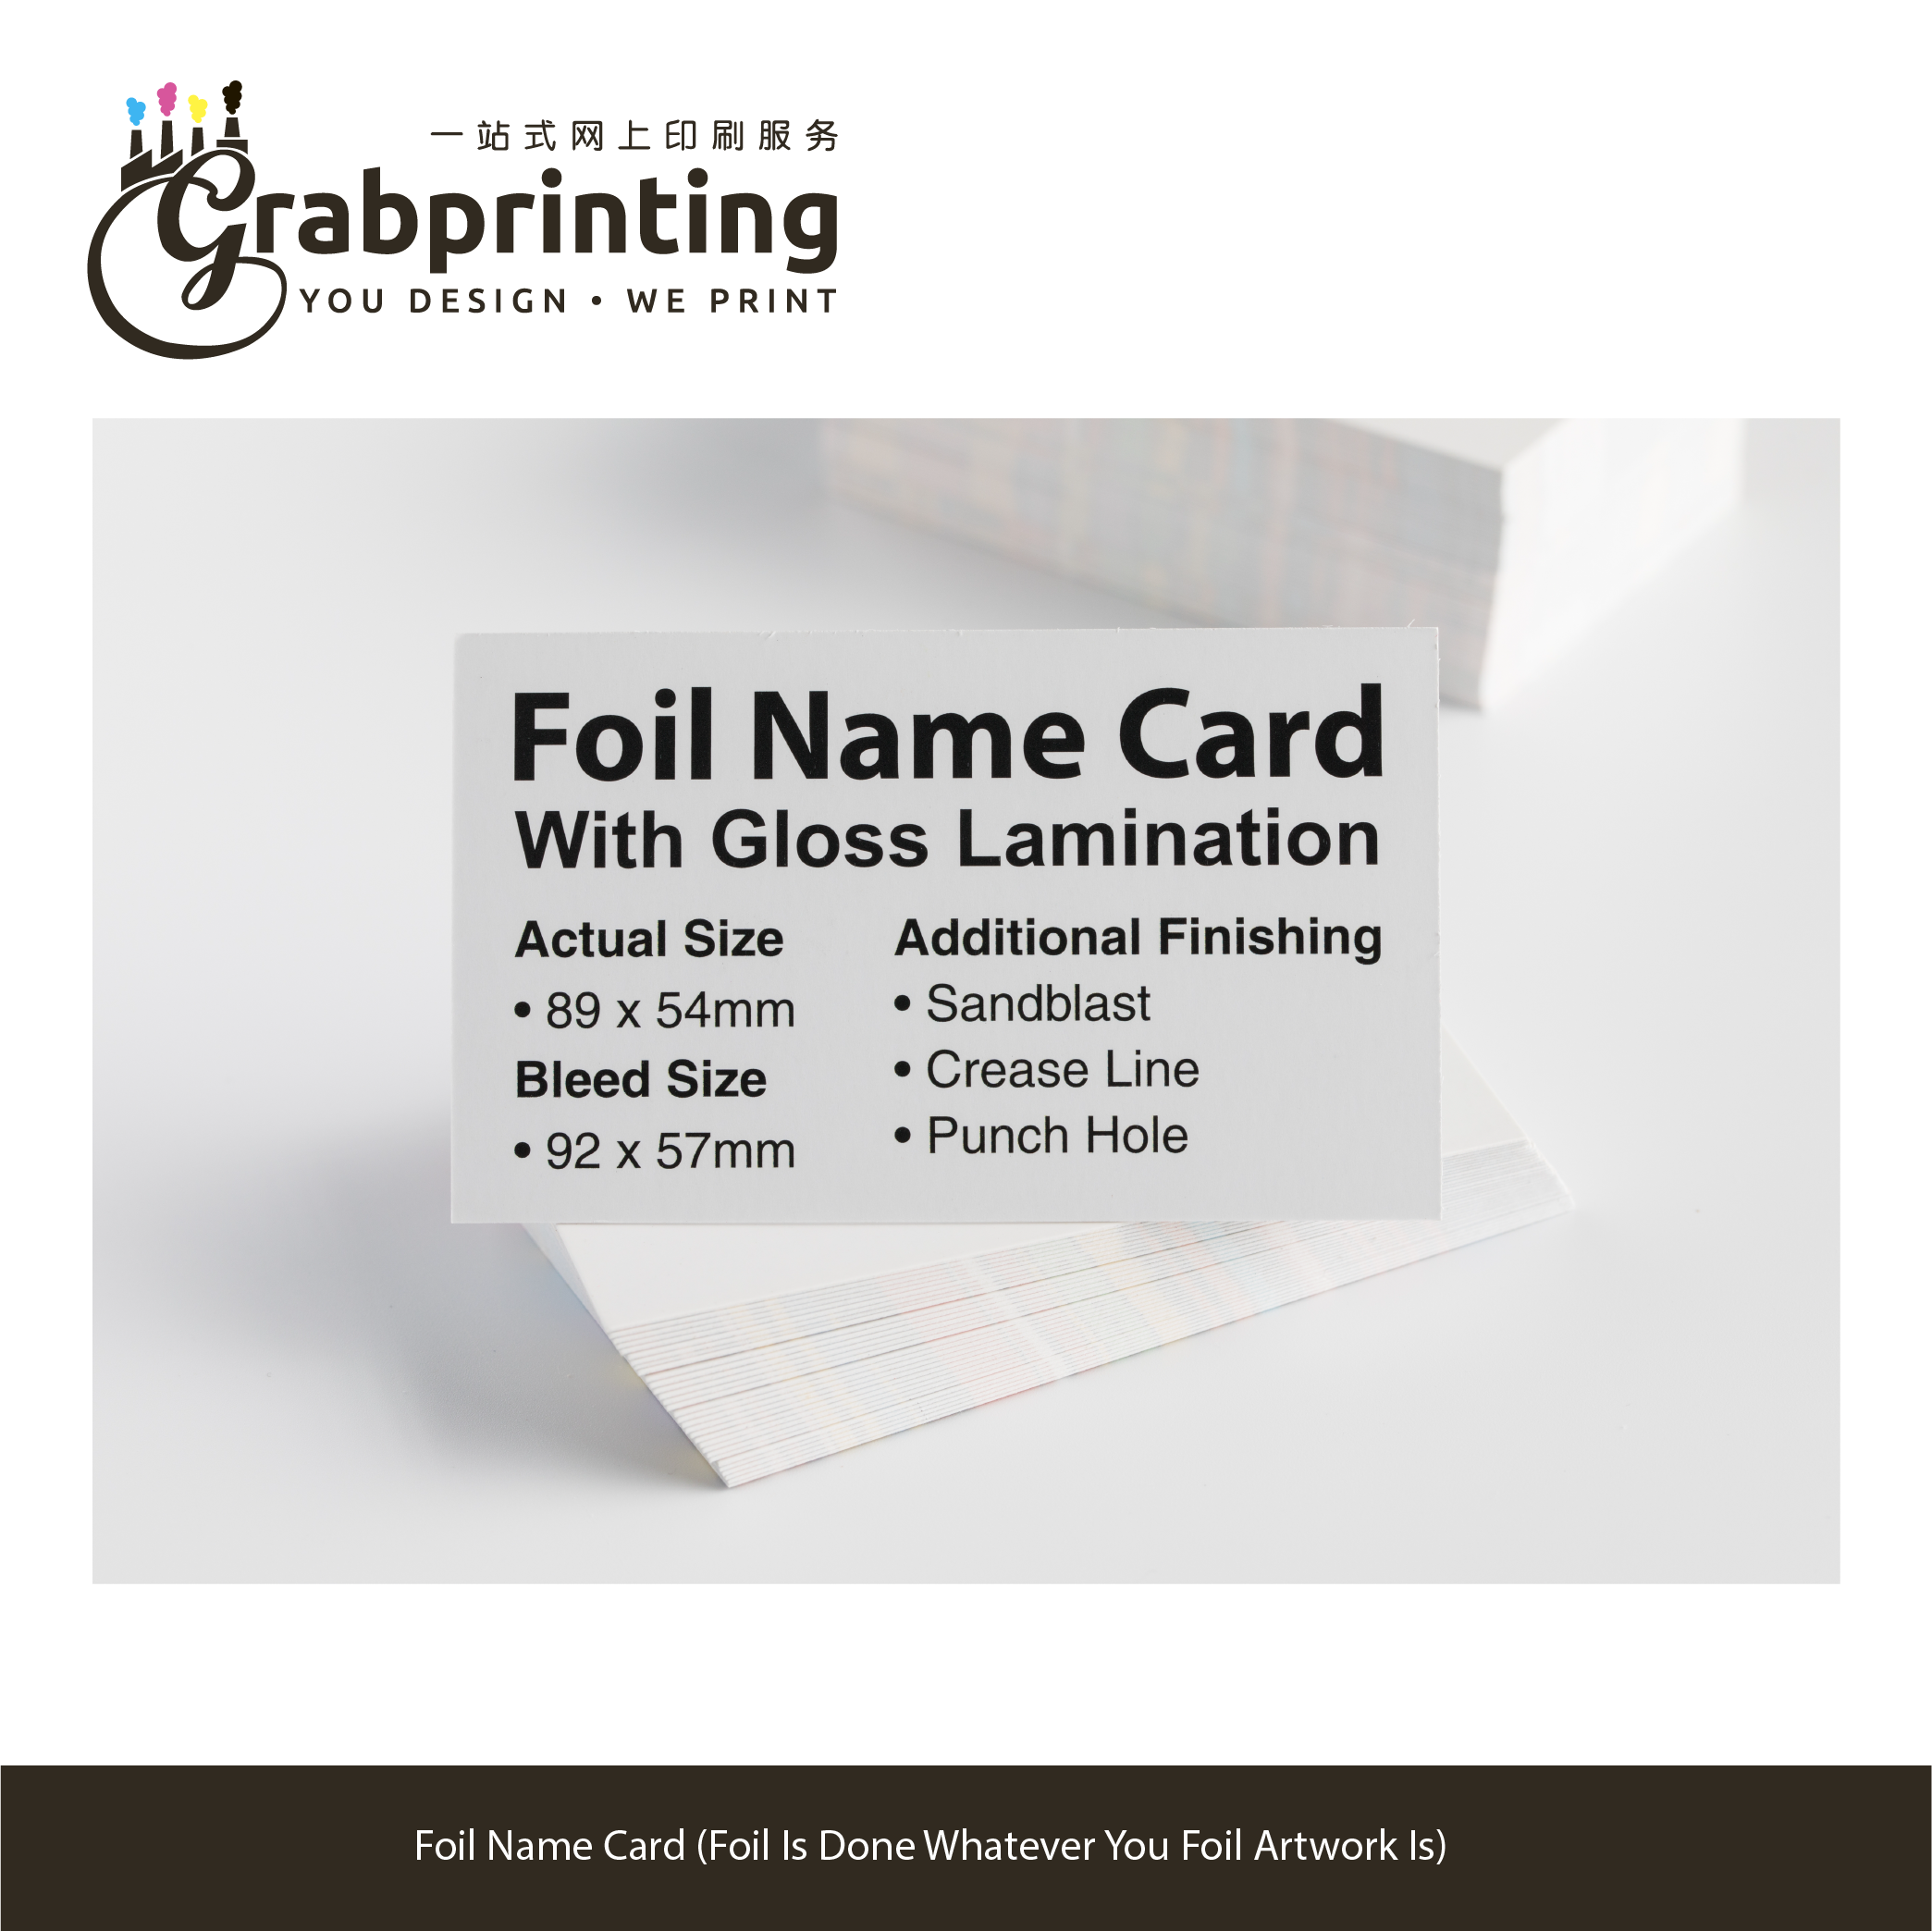 Name Card Sample Kit grabprinting 39 Foil Name Card Foil Is Done Whatever You Foil Artwork Is 501px 501px